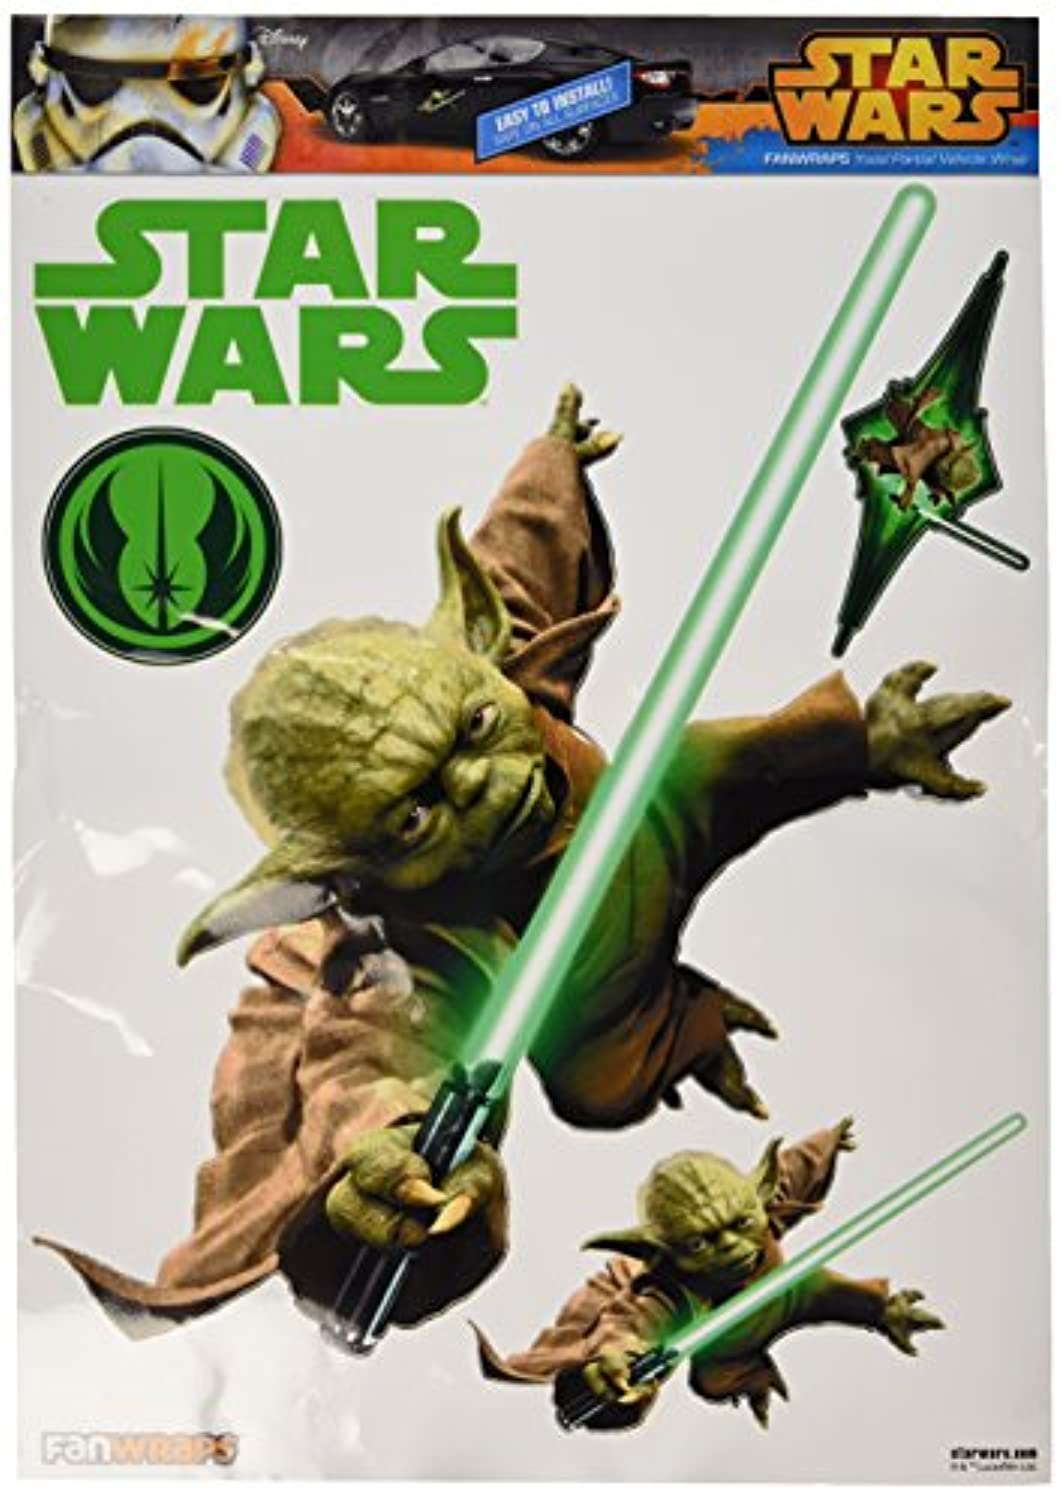 FanWraps Star Wars Yoda Singleキット